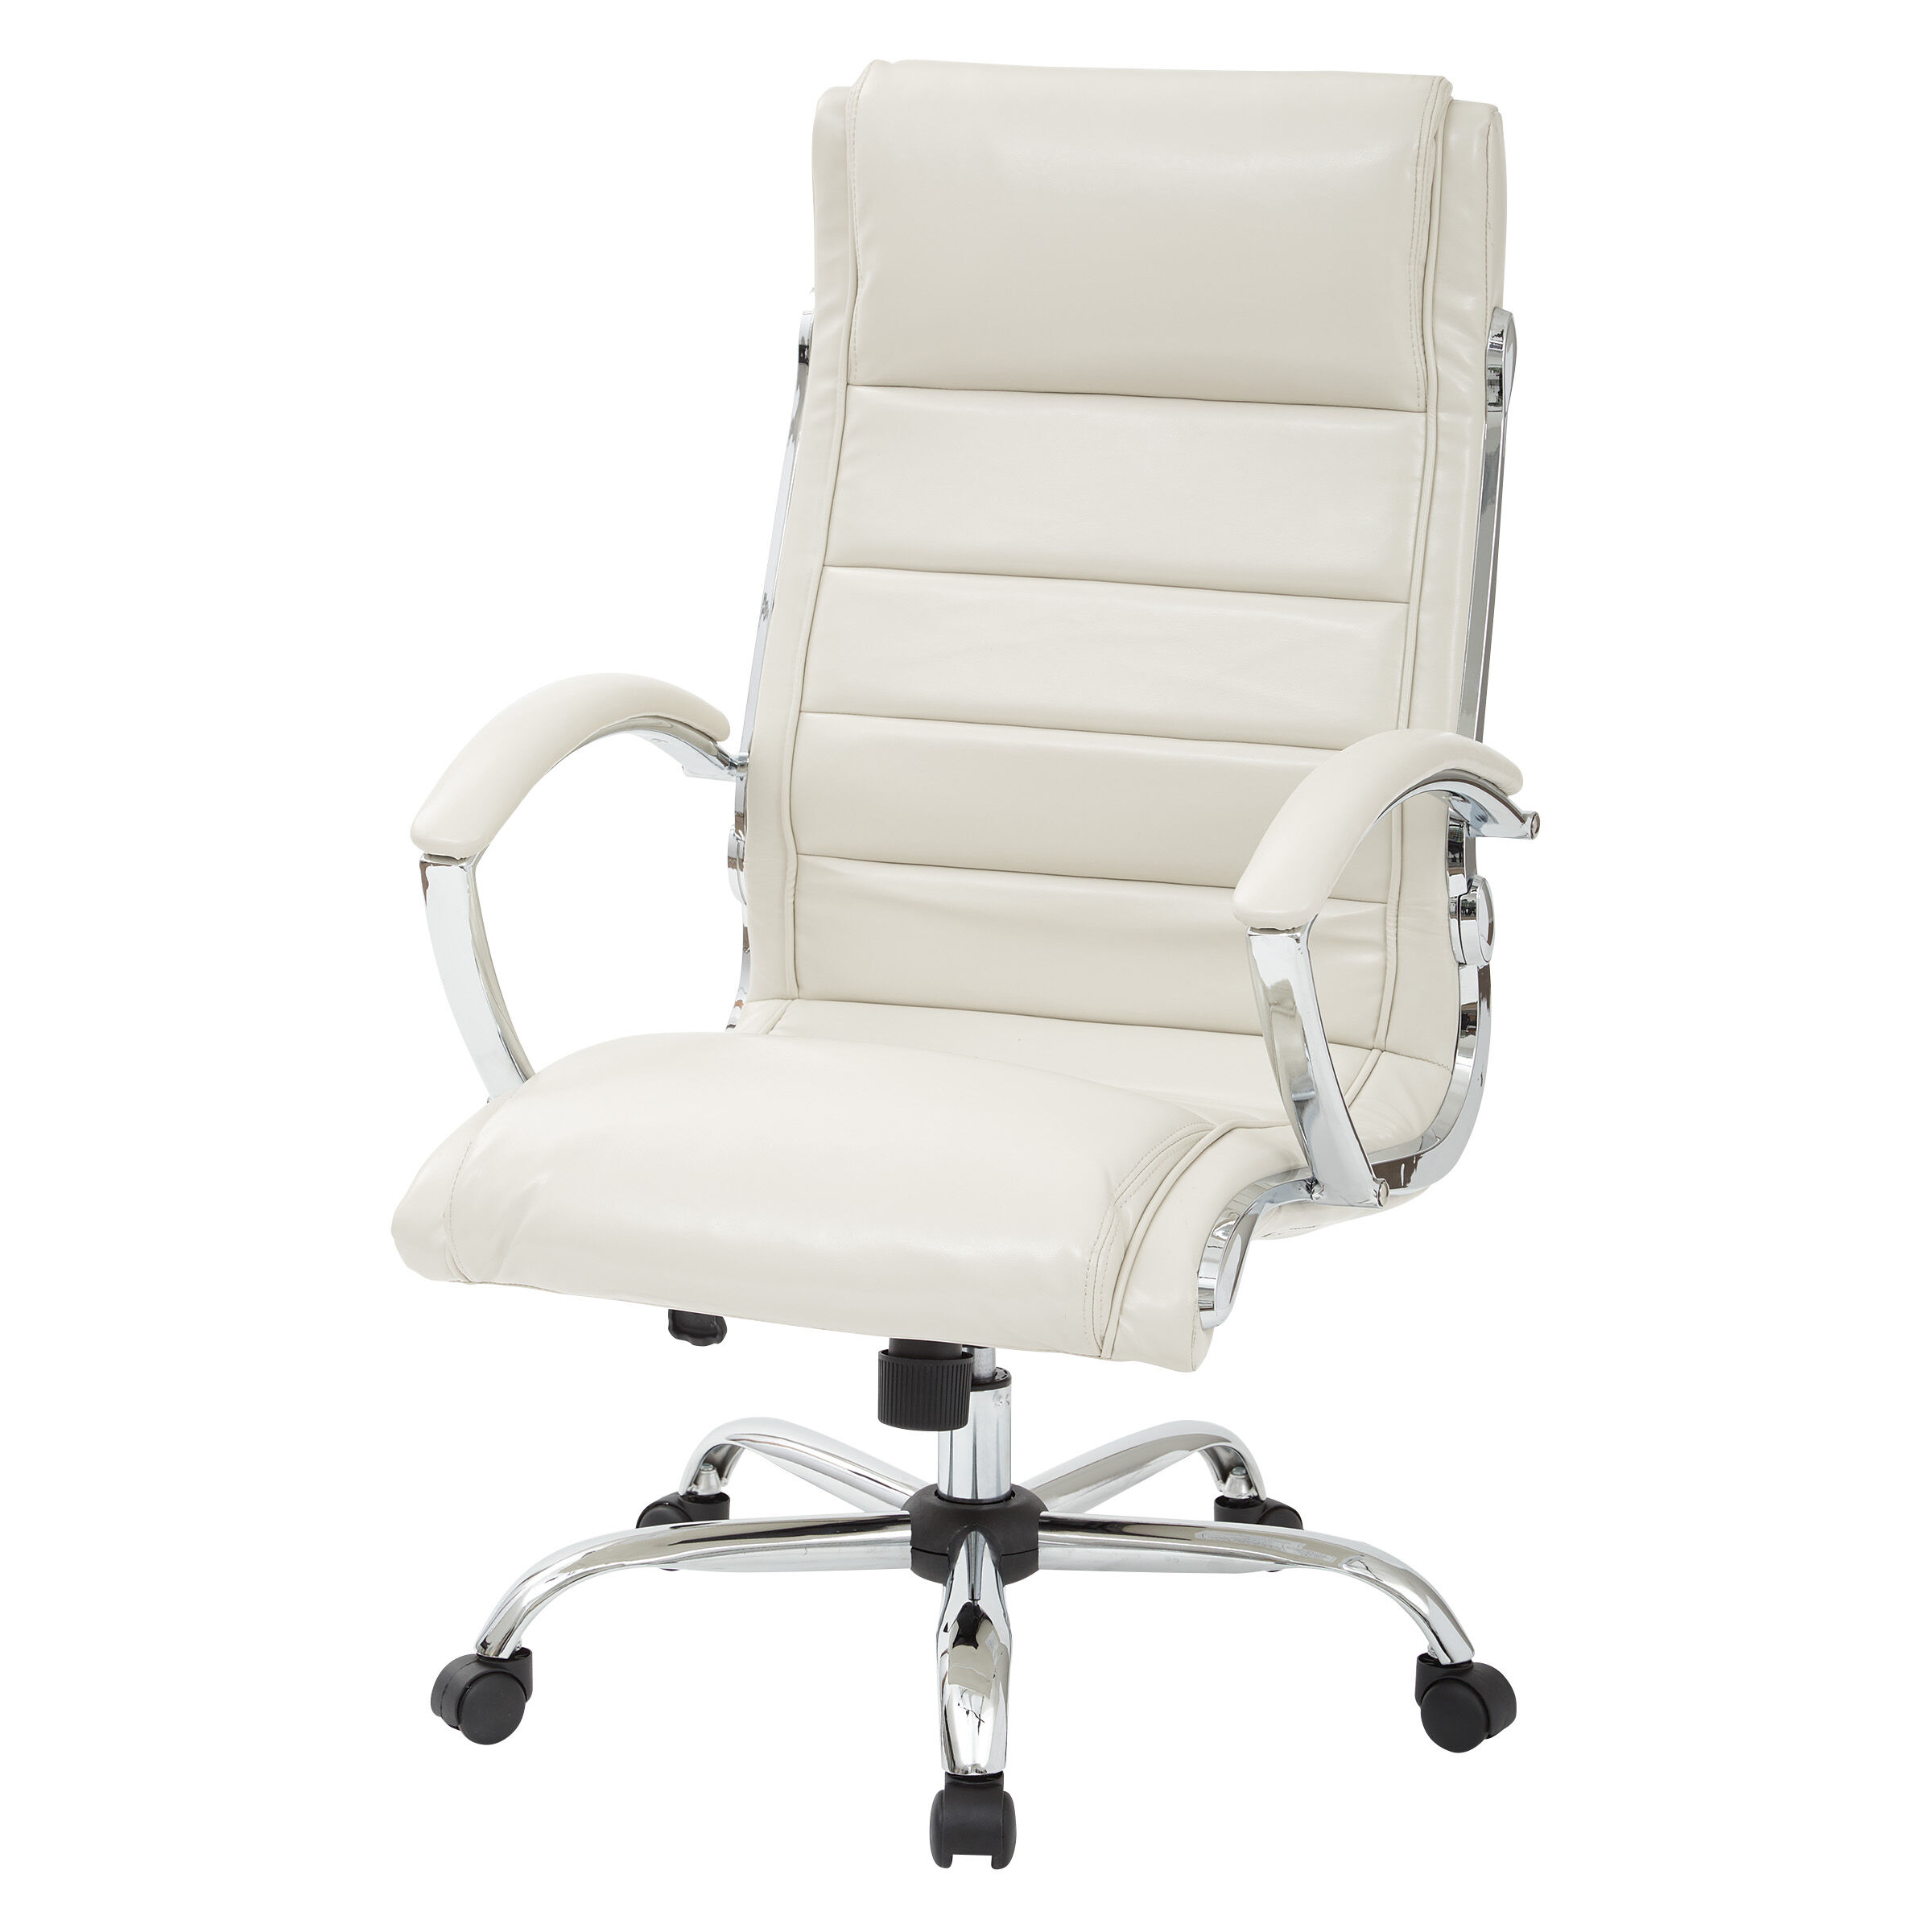 cream padded folding chairs fishing chair uk work smart exec fl1327c u28 bizchair